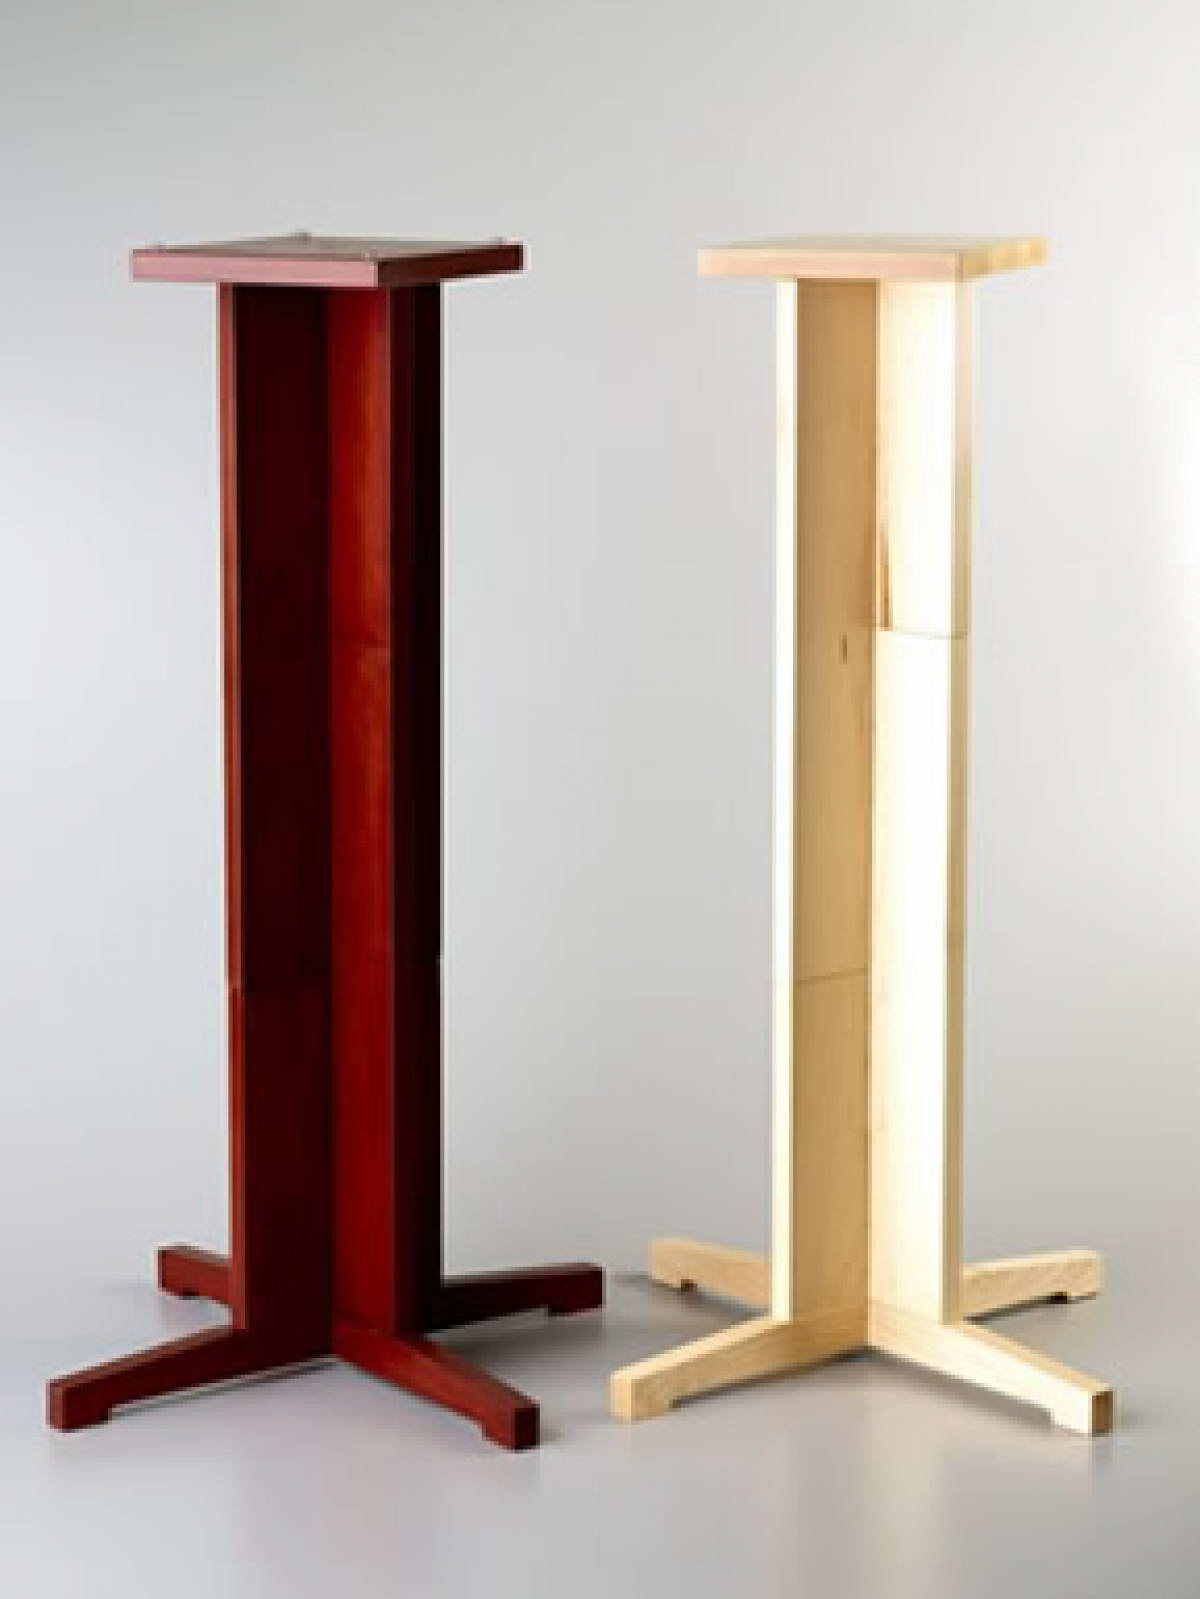 Soundsmith Versa Stands Are Solid Wood Speaker Designed To Provide The Finest Presentation From Your Or Other Stand Mount Speakers